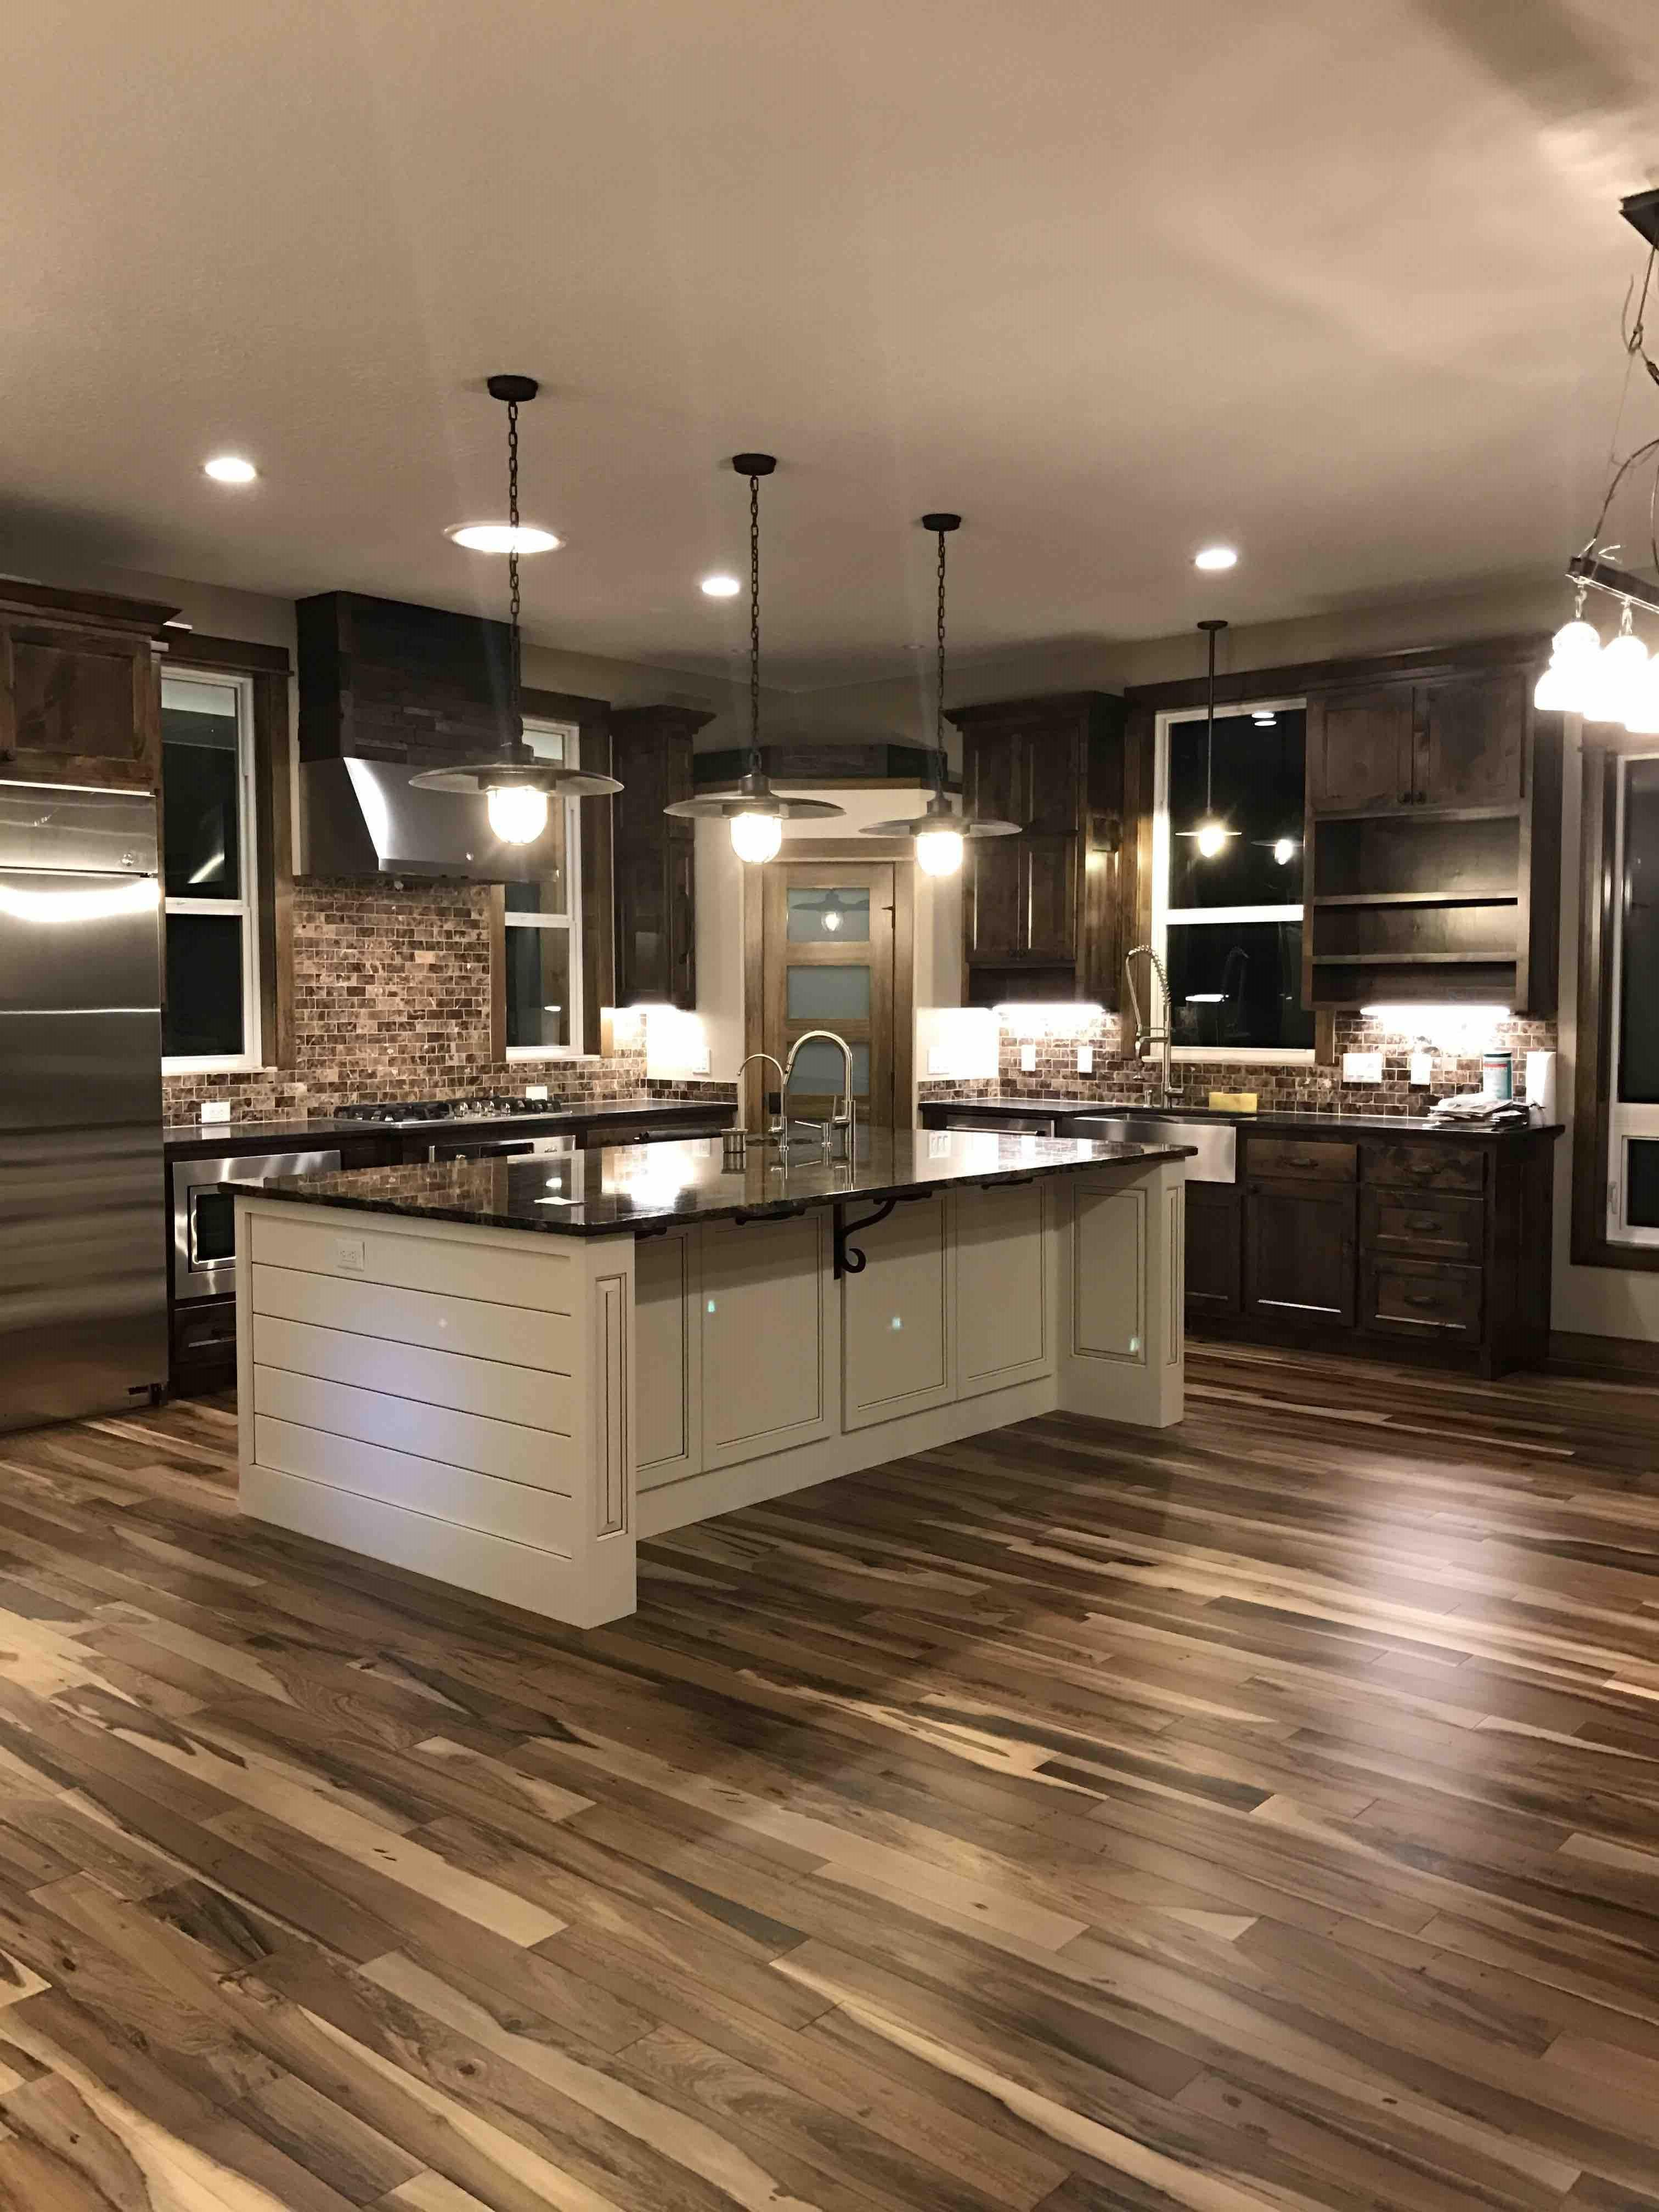 22 Jaw Dropping Small Kitchen Designs: 45+ Dining Room Lighting Fixtures Ideas Rectangular